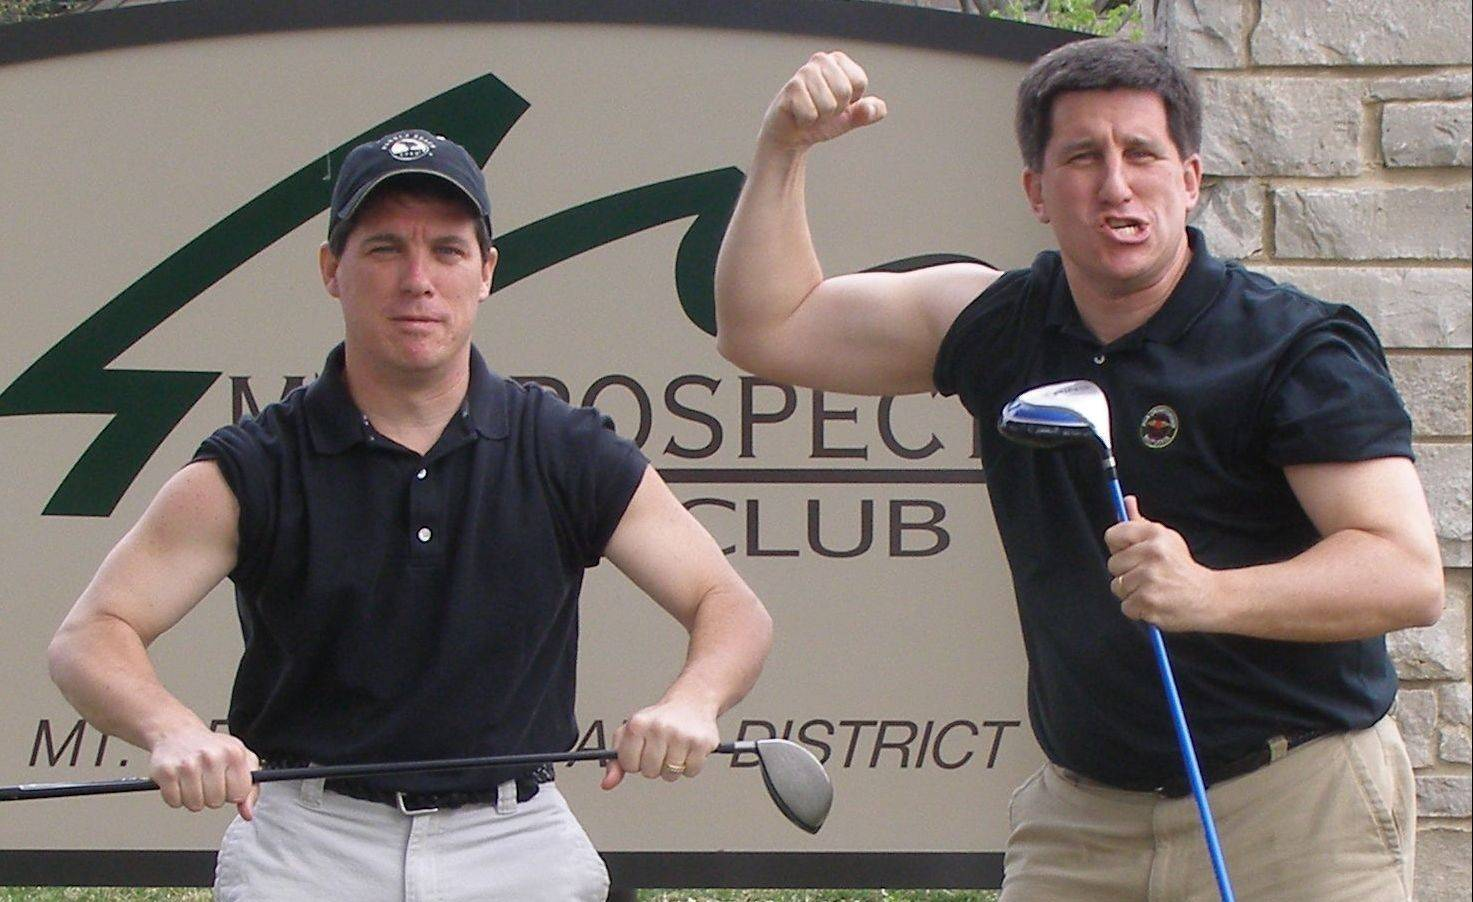 Not afraid to taunt the competition, brothers Bill, left, and Tom Latourette muscle up support for their annual charity golf tournament and charity event.